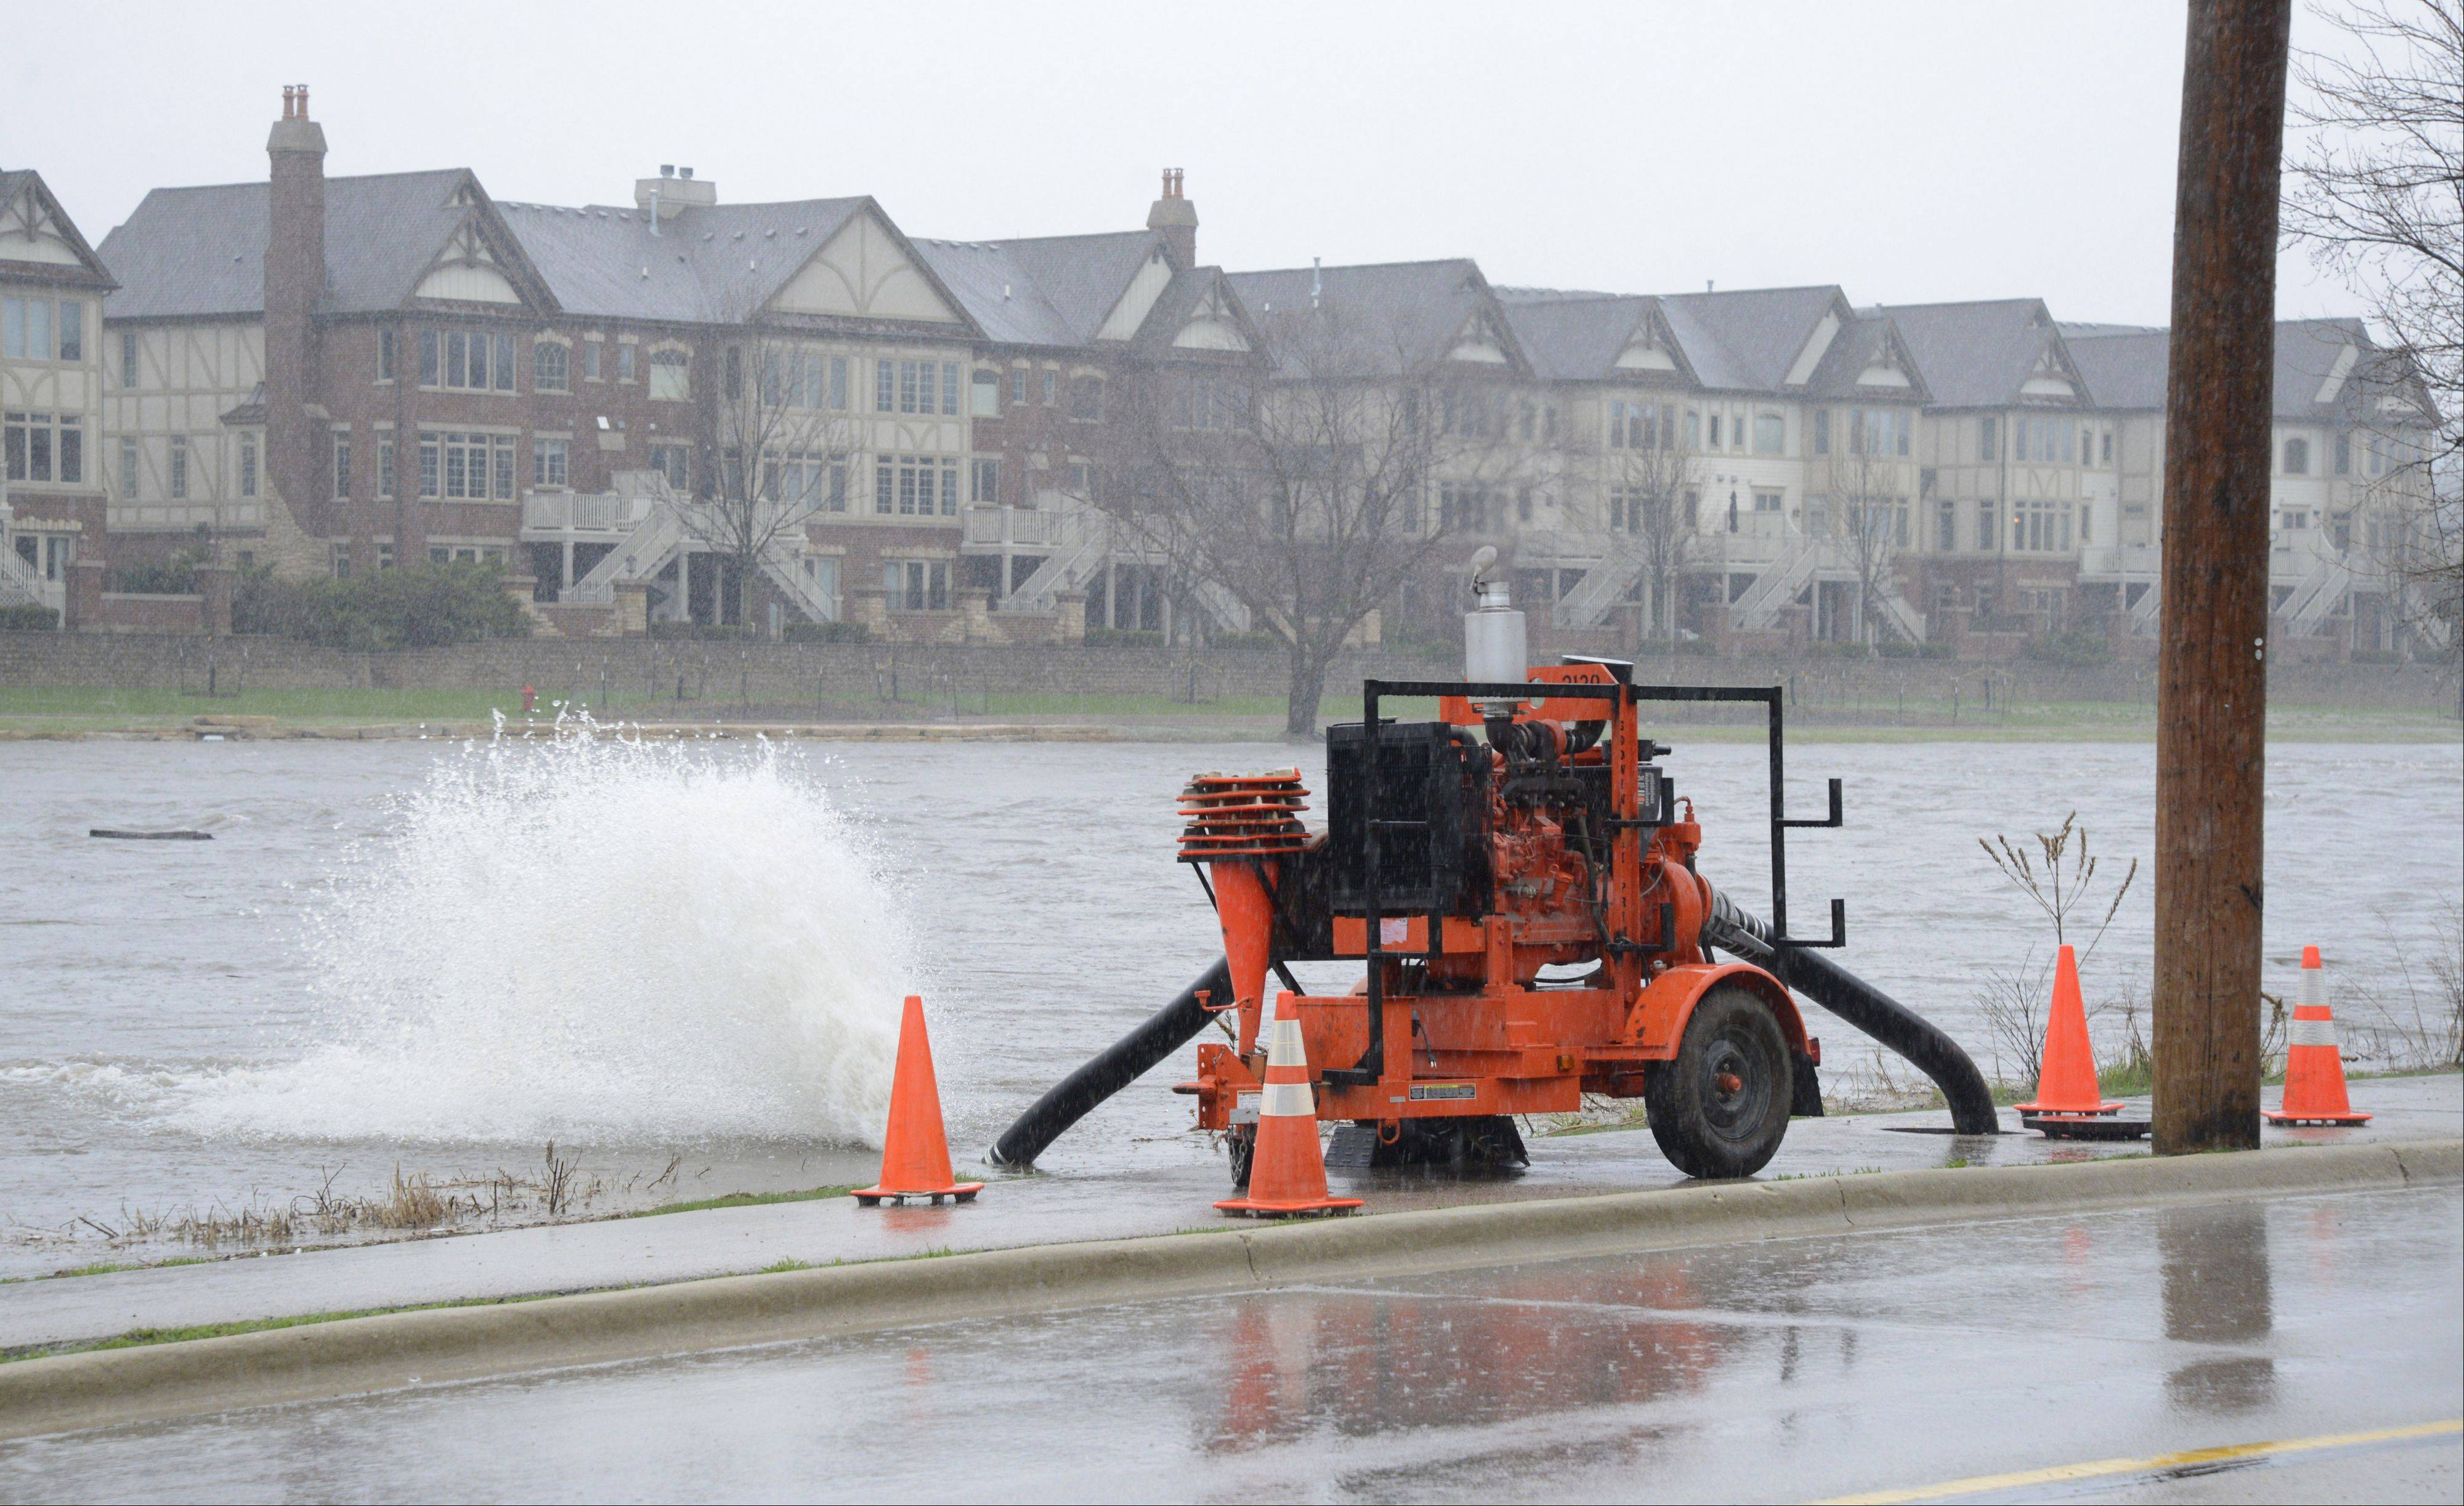 Water shoots out of a hose line dropped into a sewer to eject excess rainfall into the Fox River along the pedestrian path on Route 25 in St. Charles on Thursday, April 18.